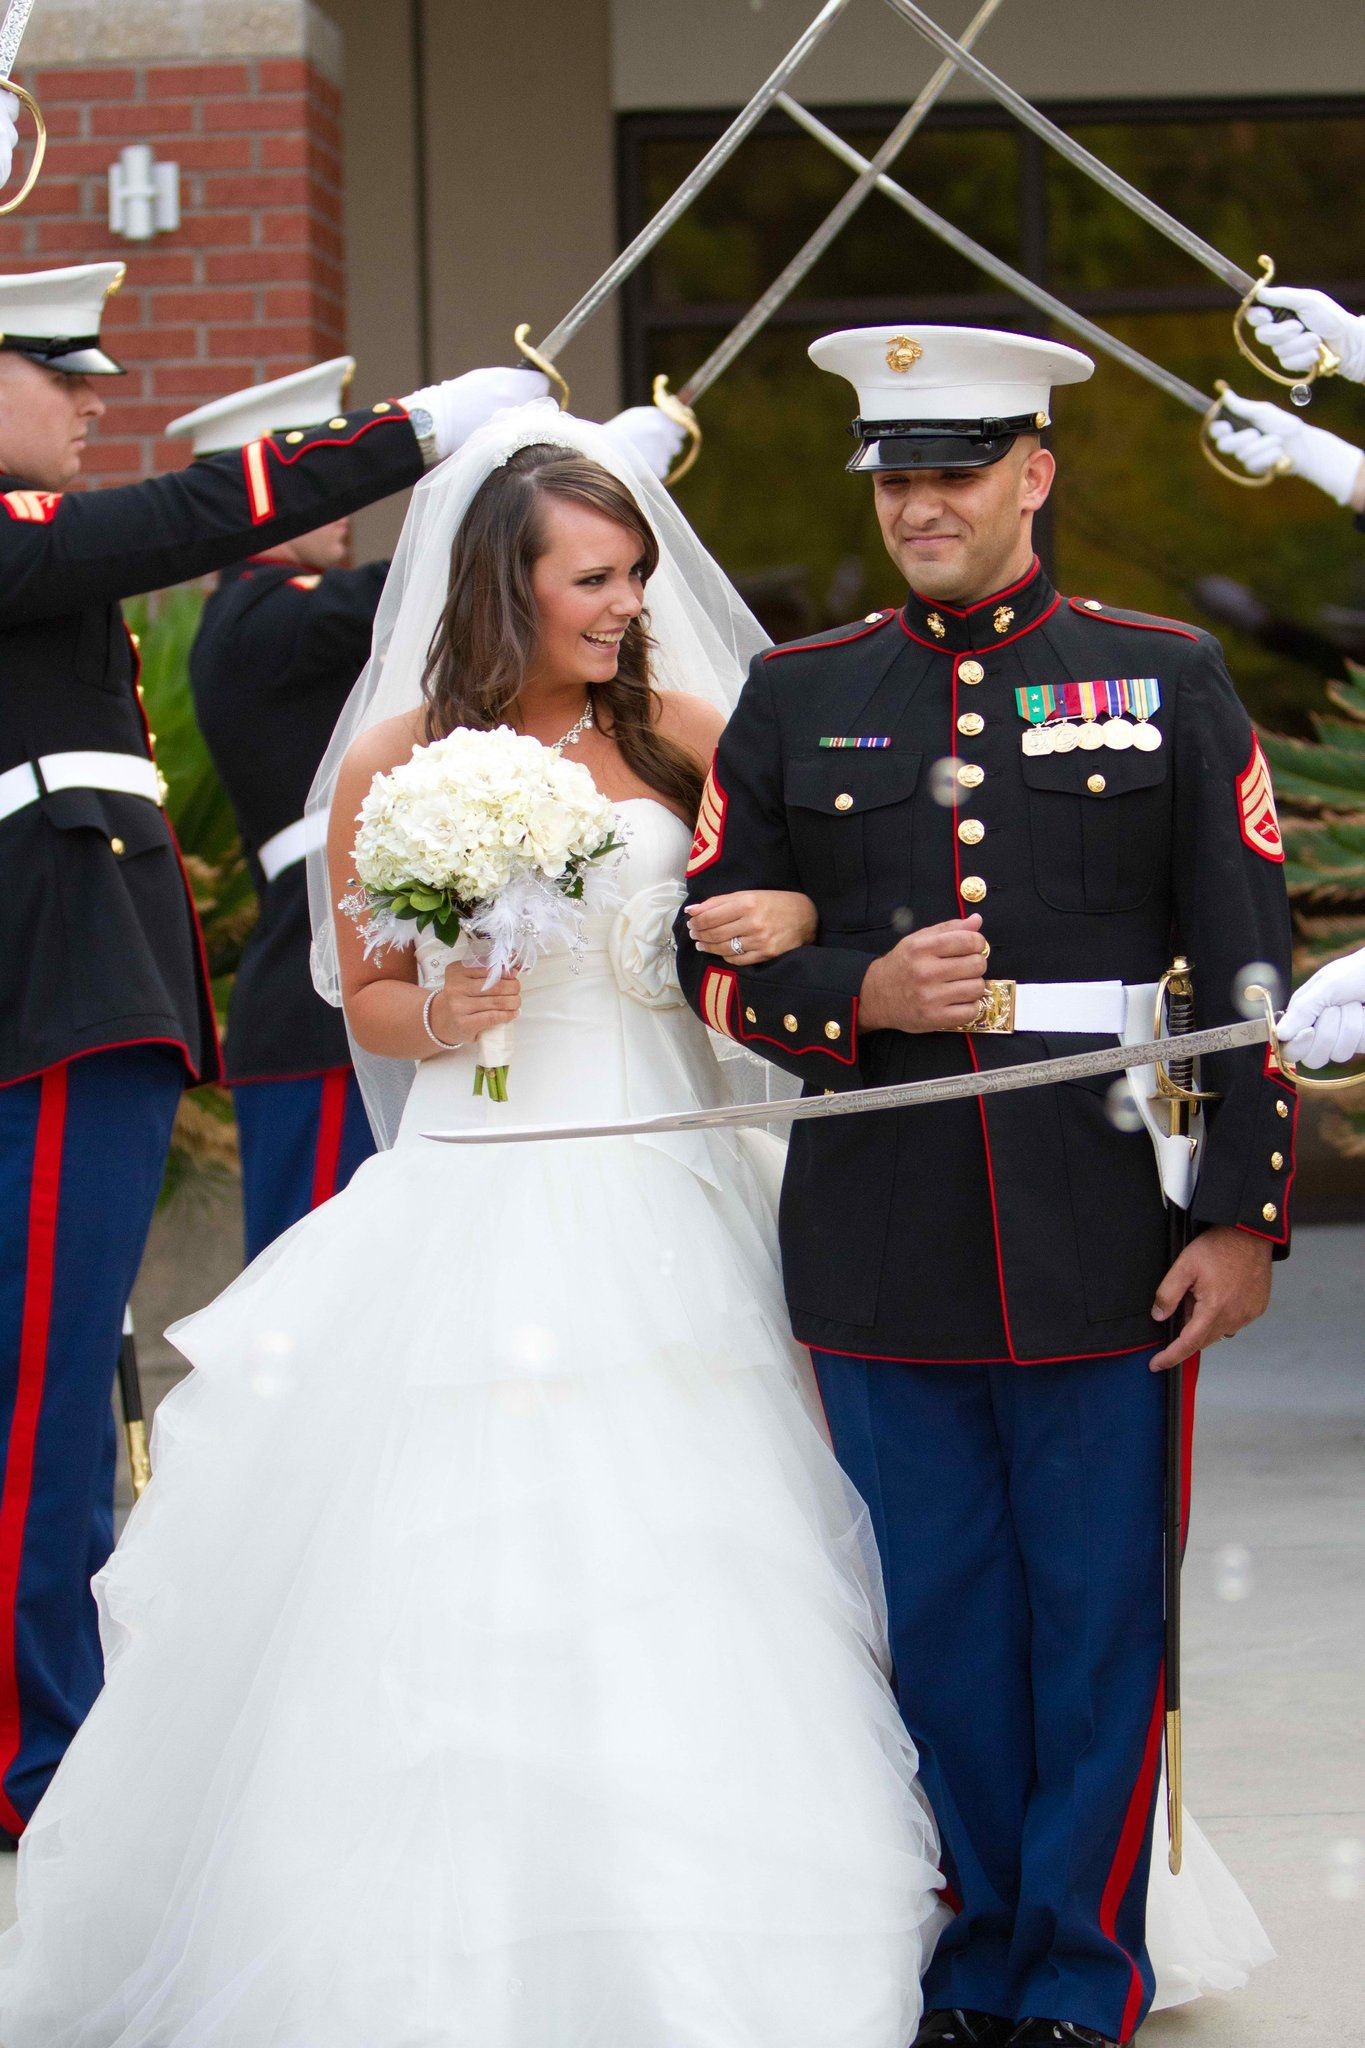 Military Wedding Marine Redwhiteblue Only Officers Can Have The Sword Salute At A Wedding Marine Wedding Military Wedding Marine Corps Wedding